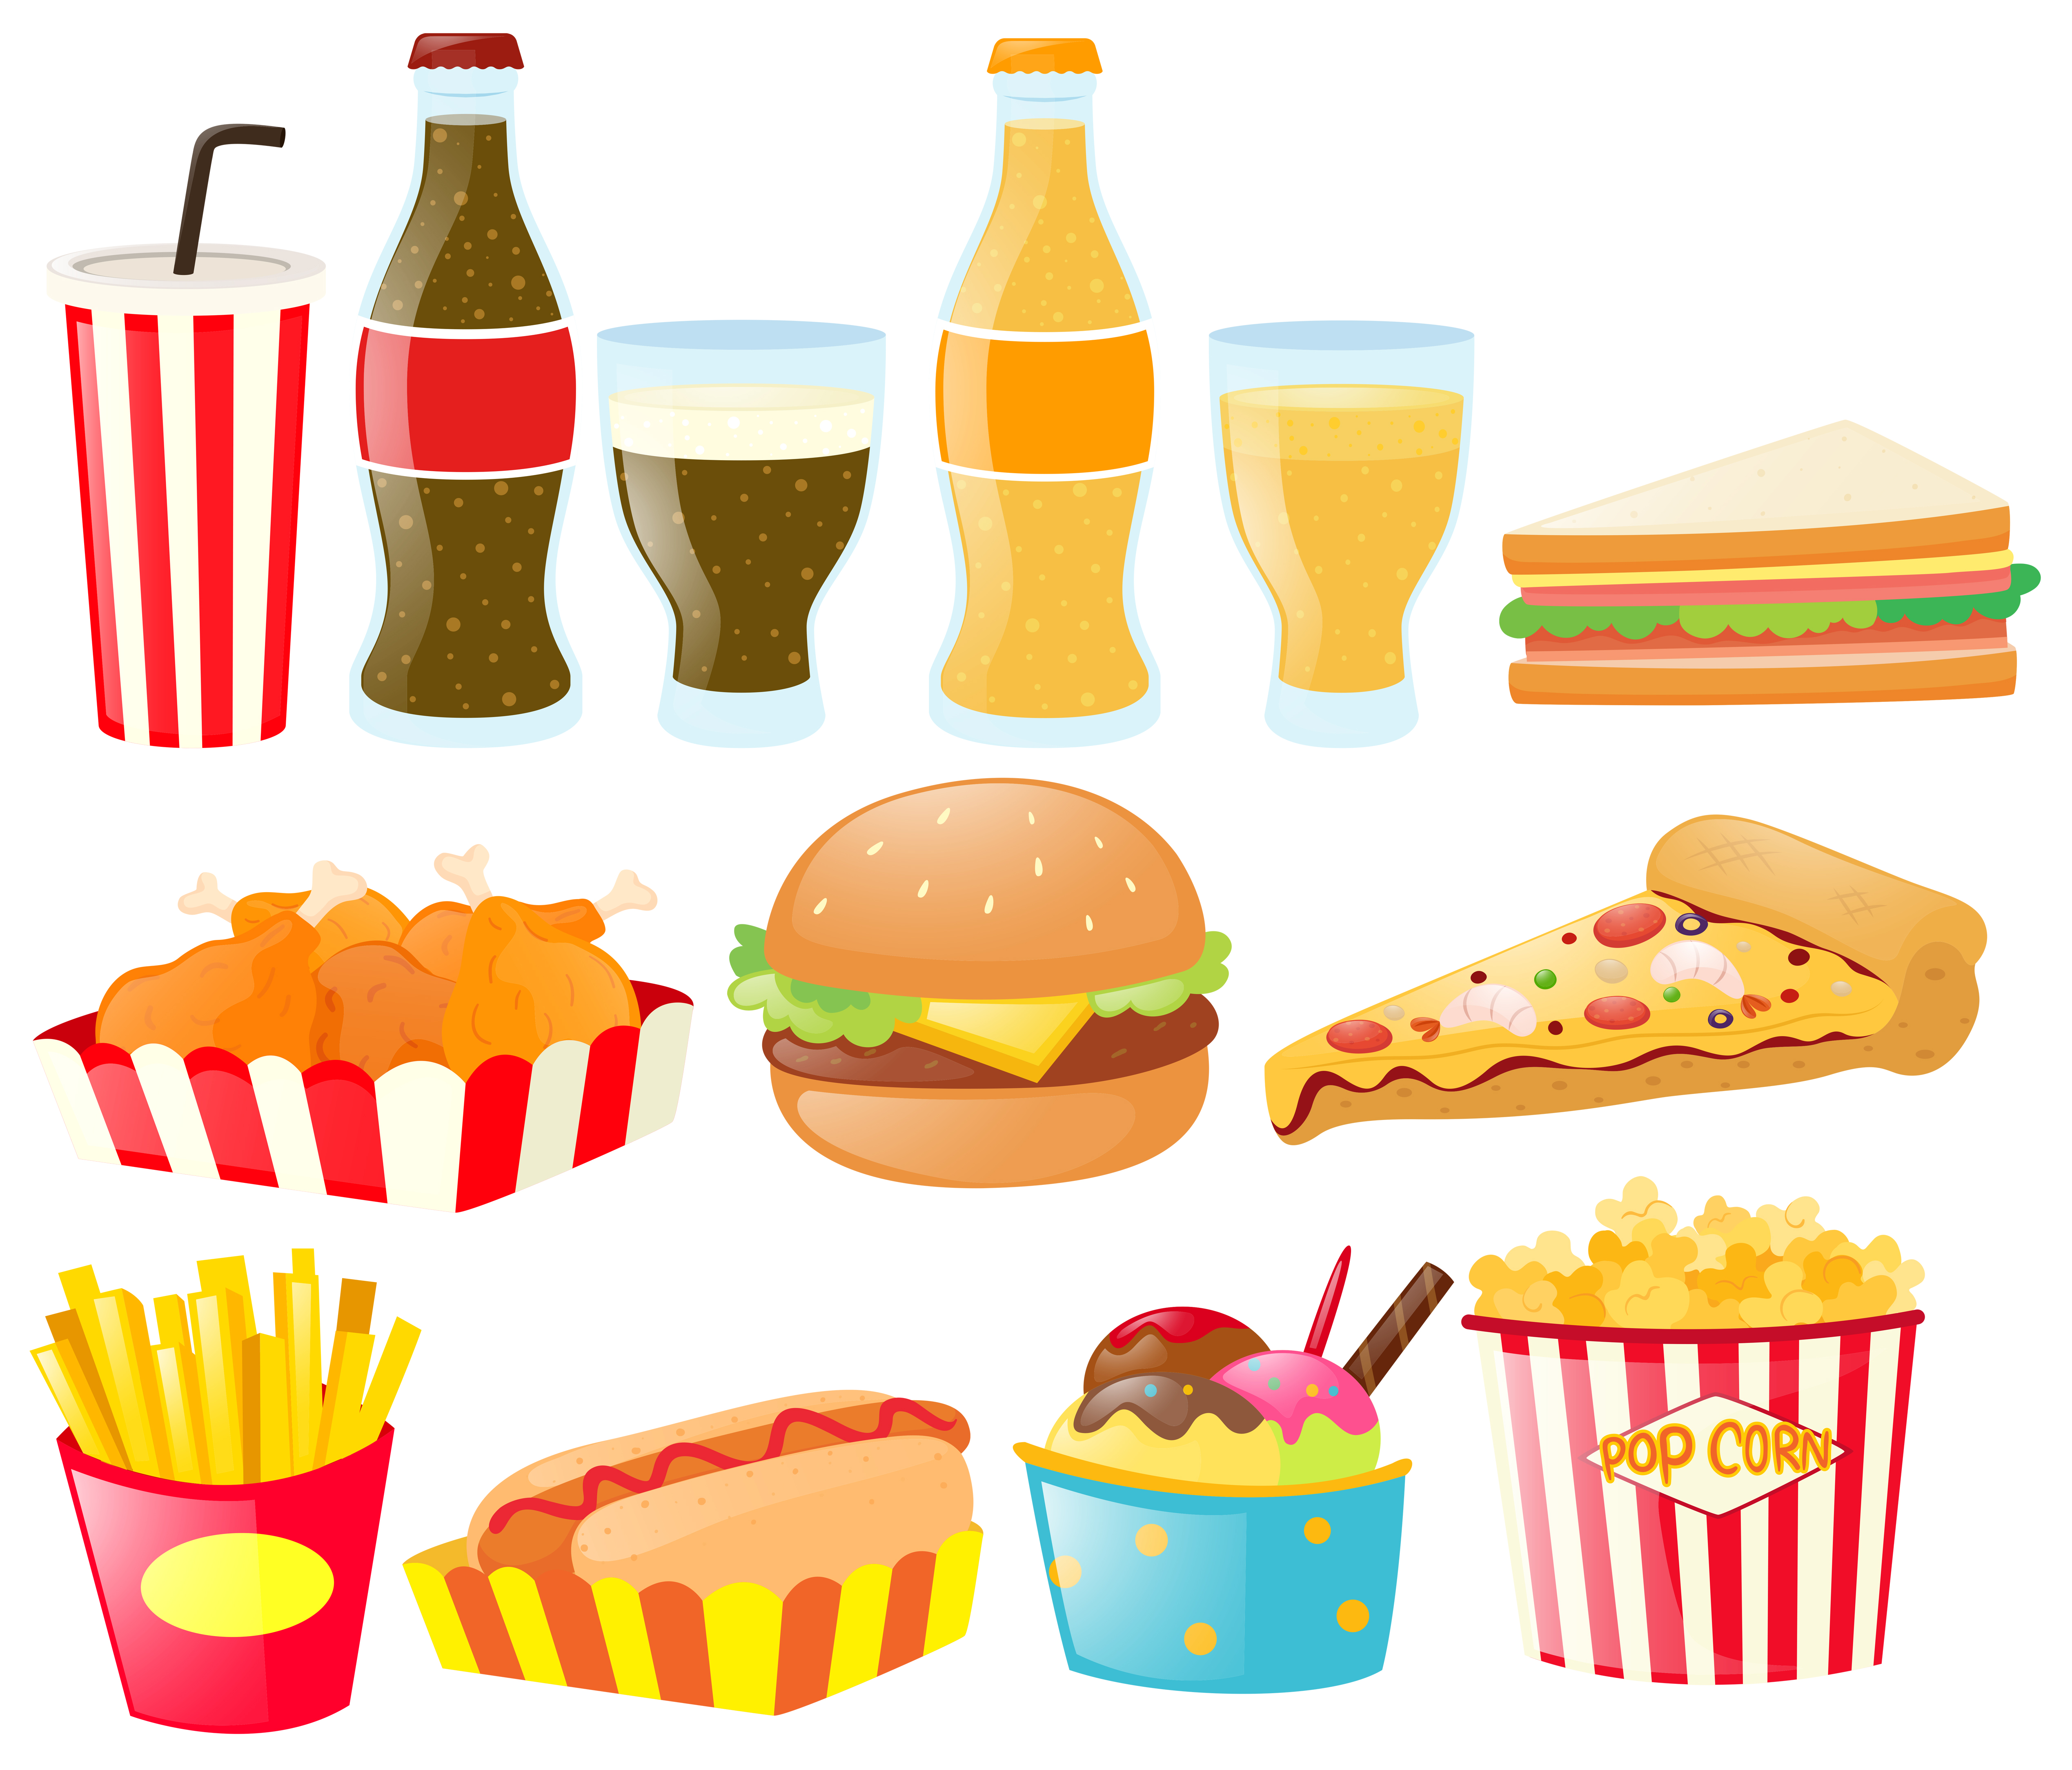 food drink different types vector fastfood clipart vecteezy graphics resources pizza vectors